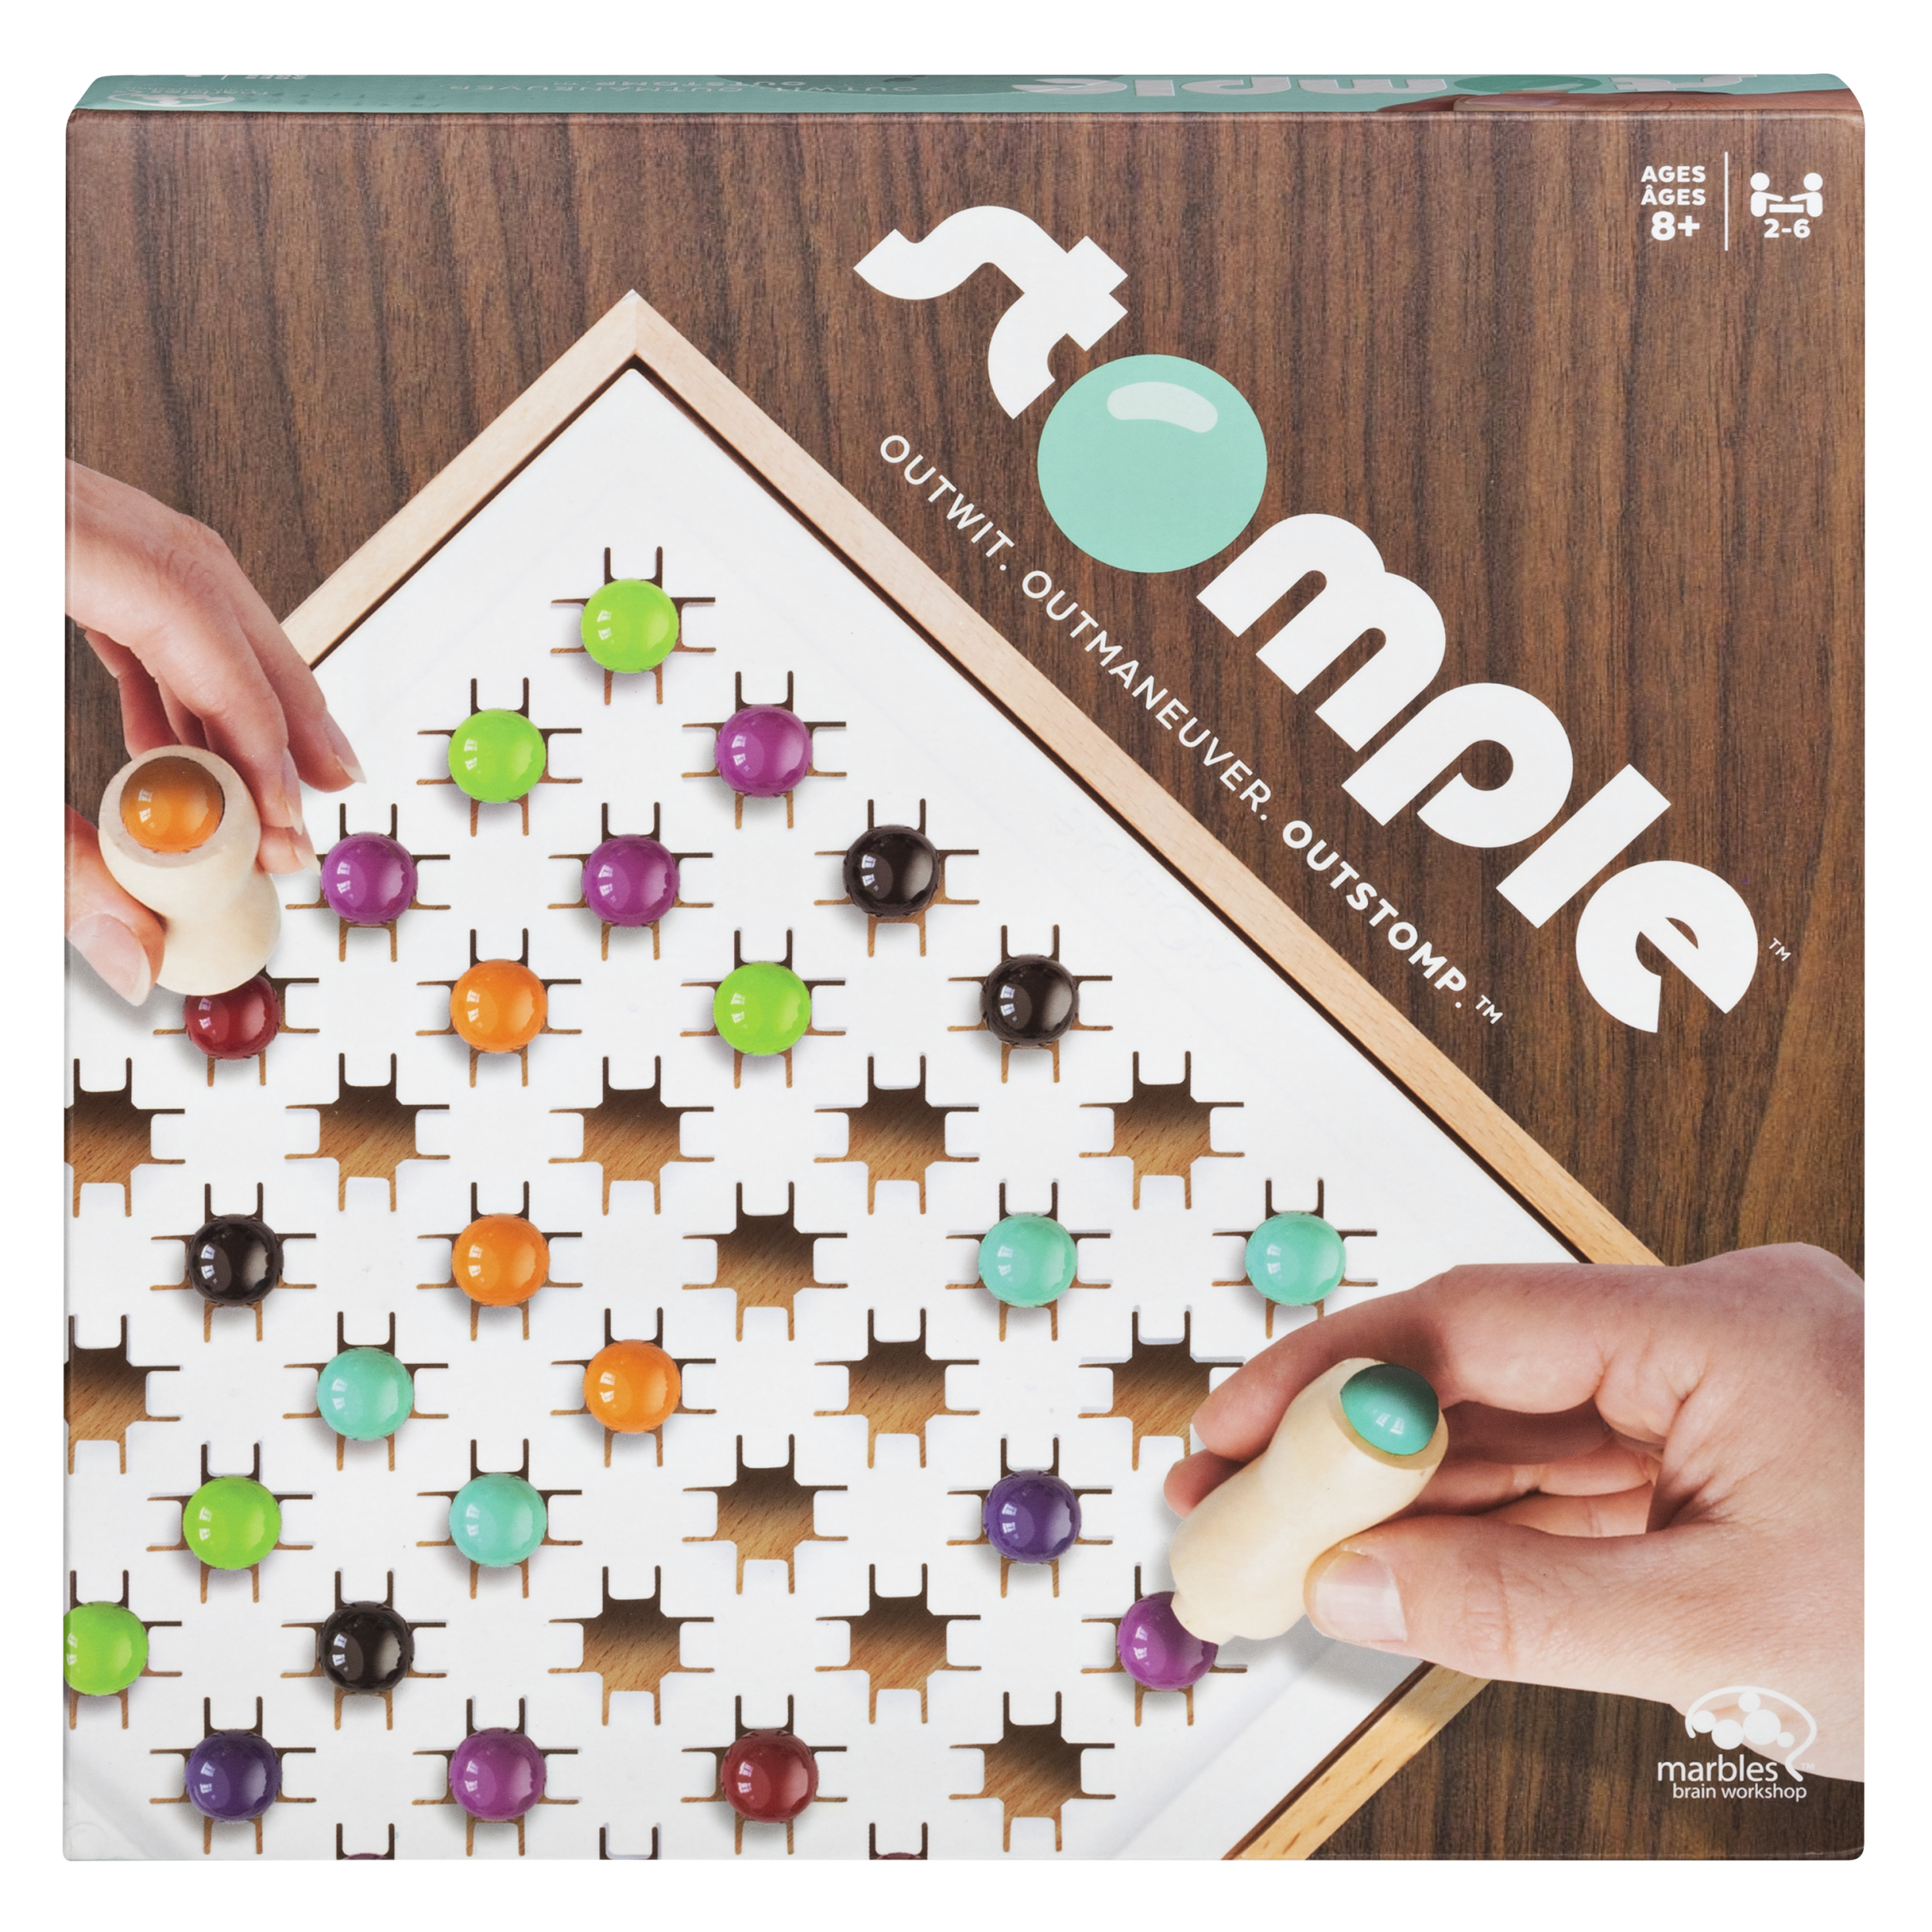 Stomple Game by Marbles Brain Workshop, Fun Strategy Game for Kids Aged 8 and Up